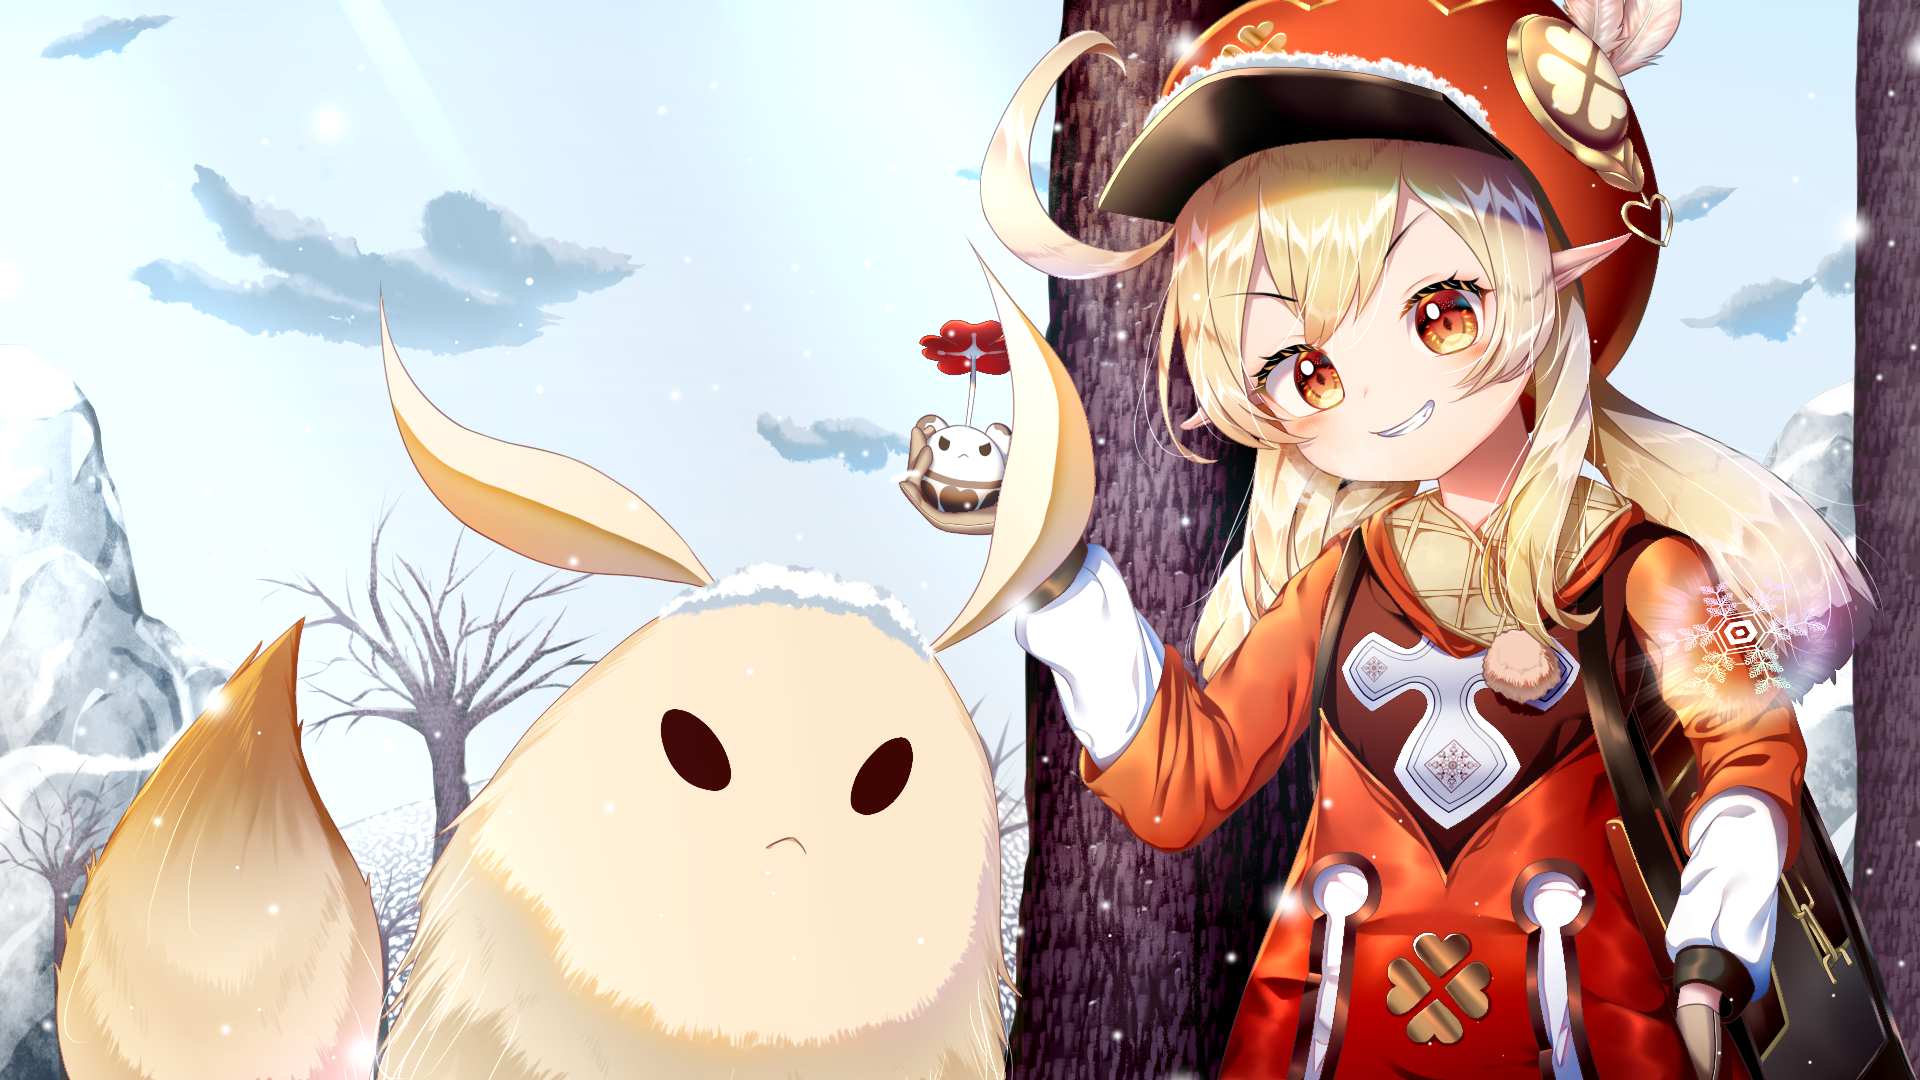 Klee Genshin Impact and her Pet Wallpaper in 1920x1080 Resolution